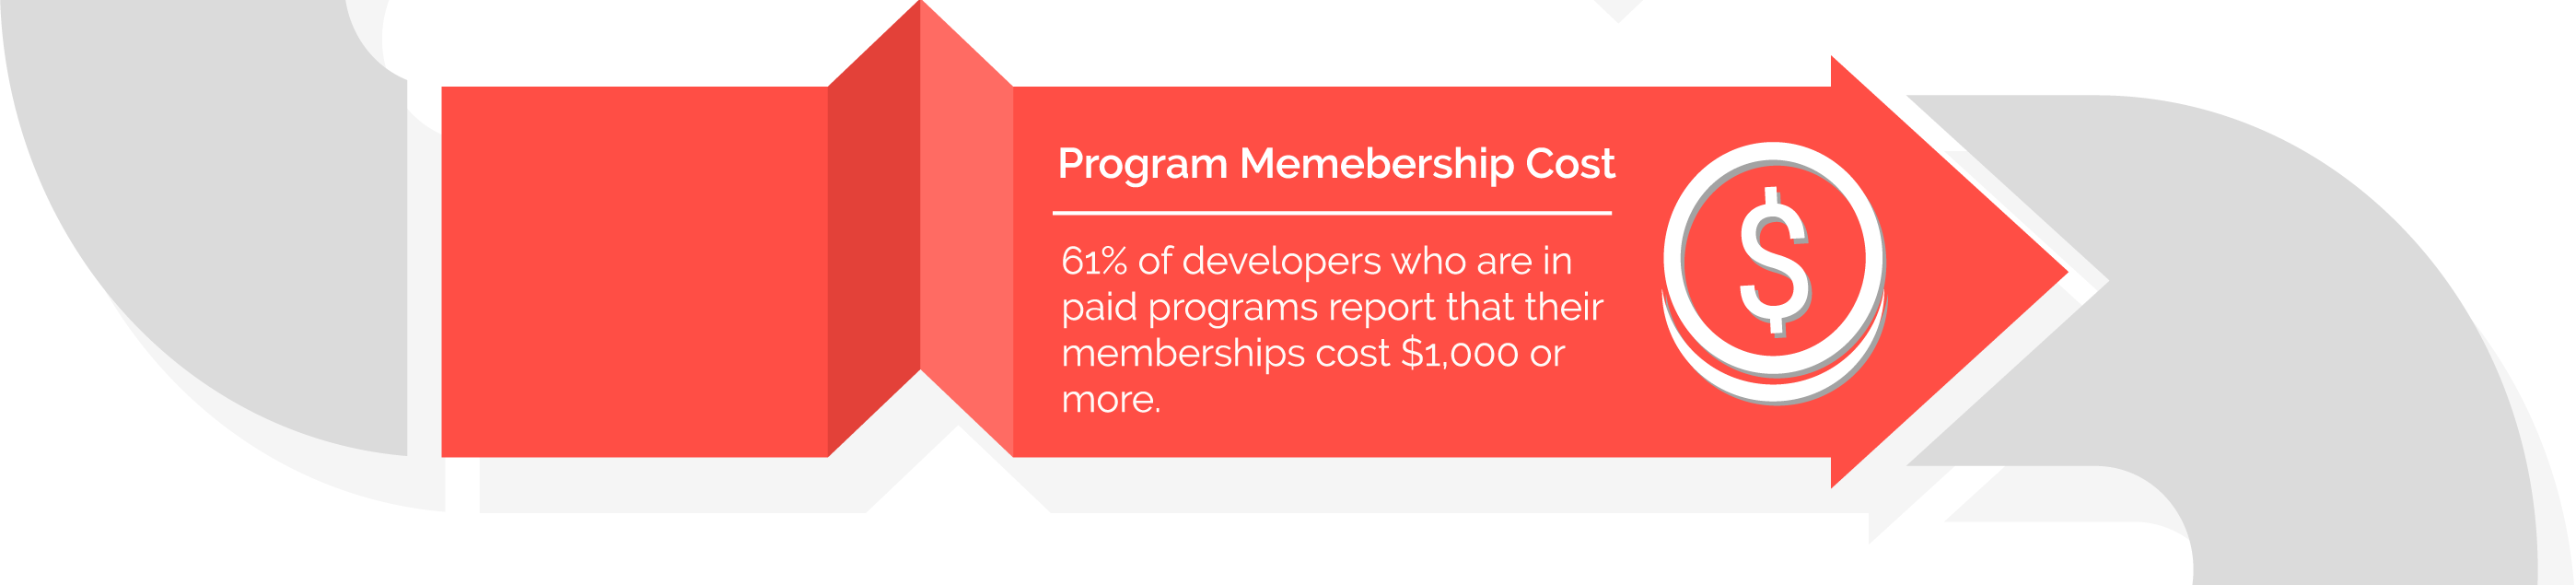 Premium Membership - 61% of developers who are in paid programs report that their memberships cost $1000 or more.